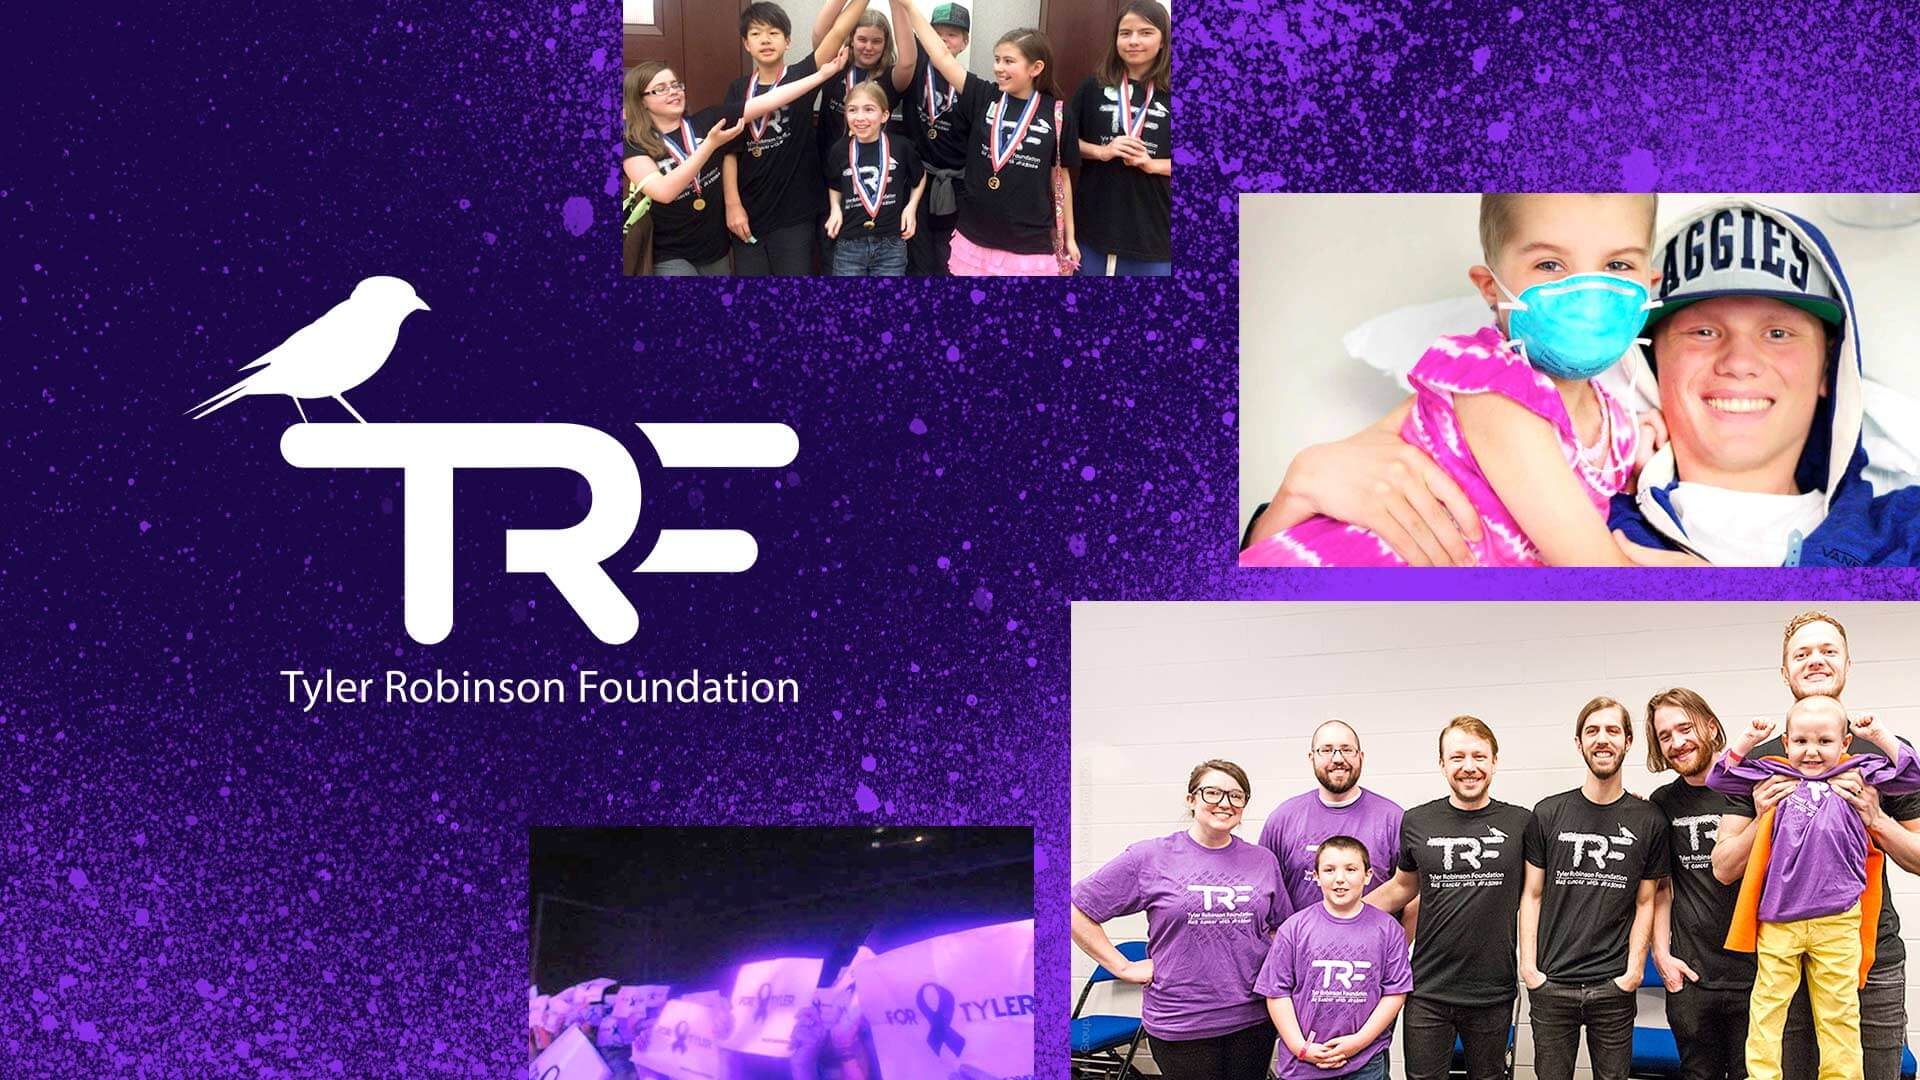 Tyler Robinson Foundation logo next to images of supporters at fundraising events.